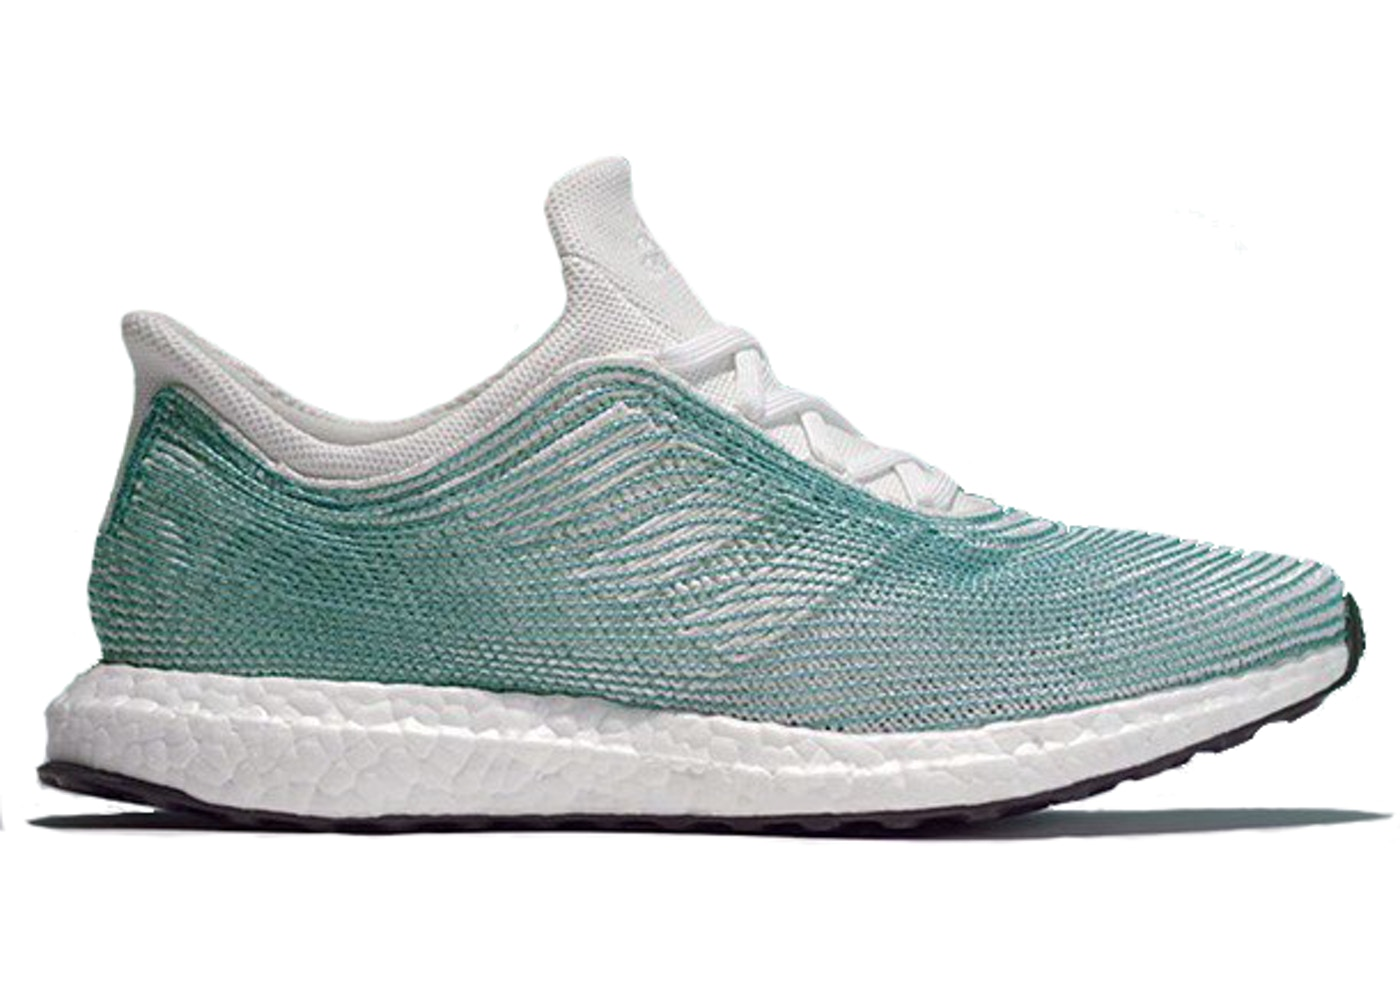 huge discount 89ece 08df2 adidas Ultra Boost Uncaged Parley For the Oceans